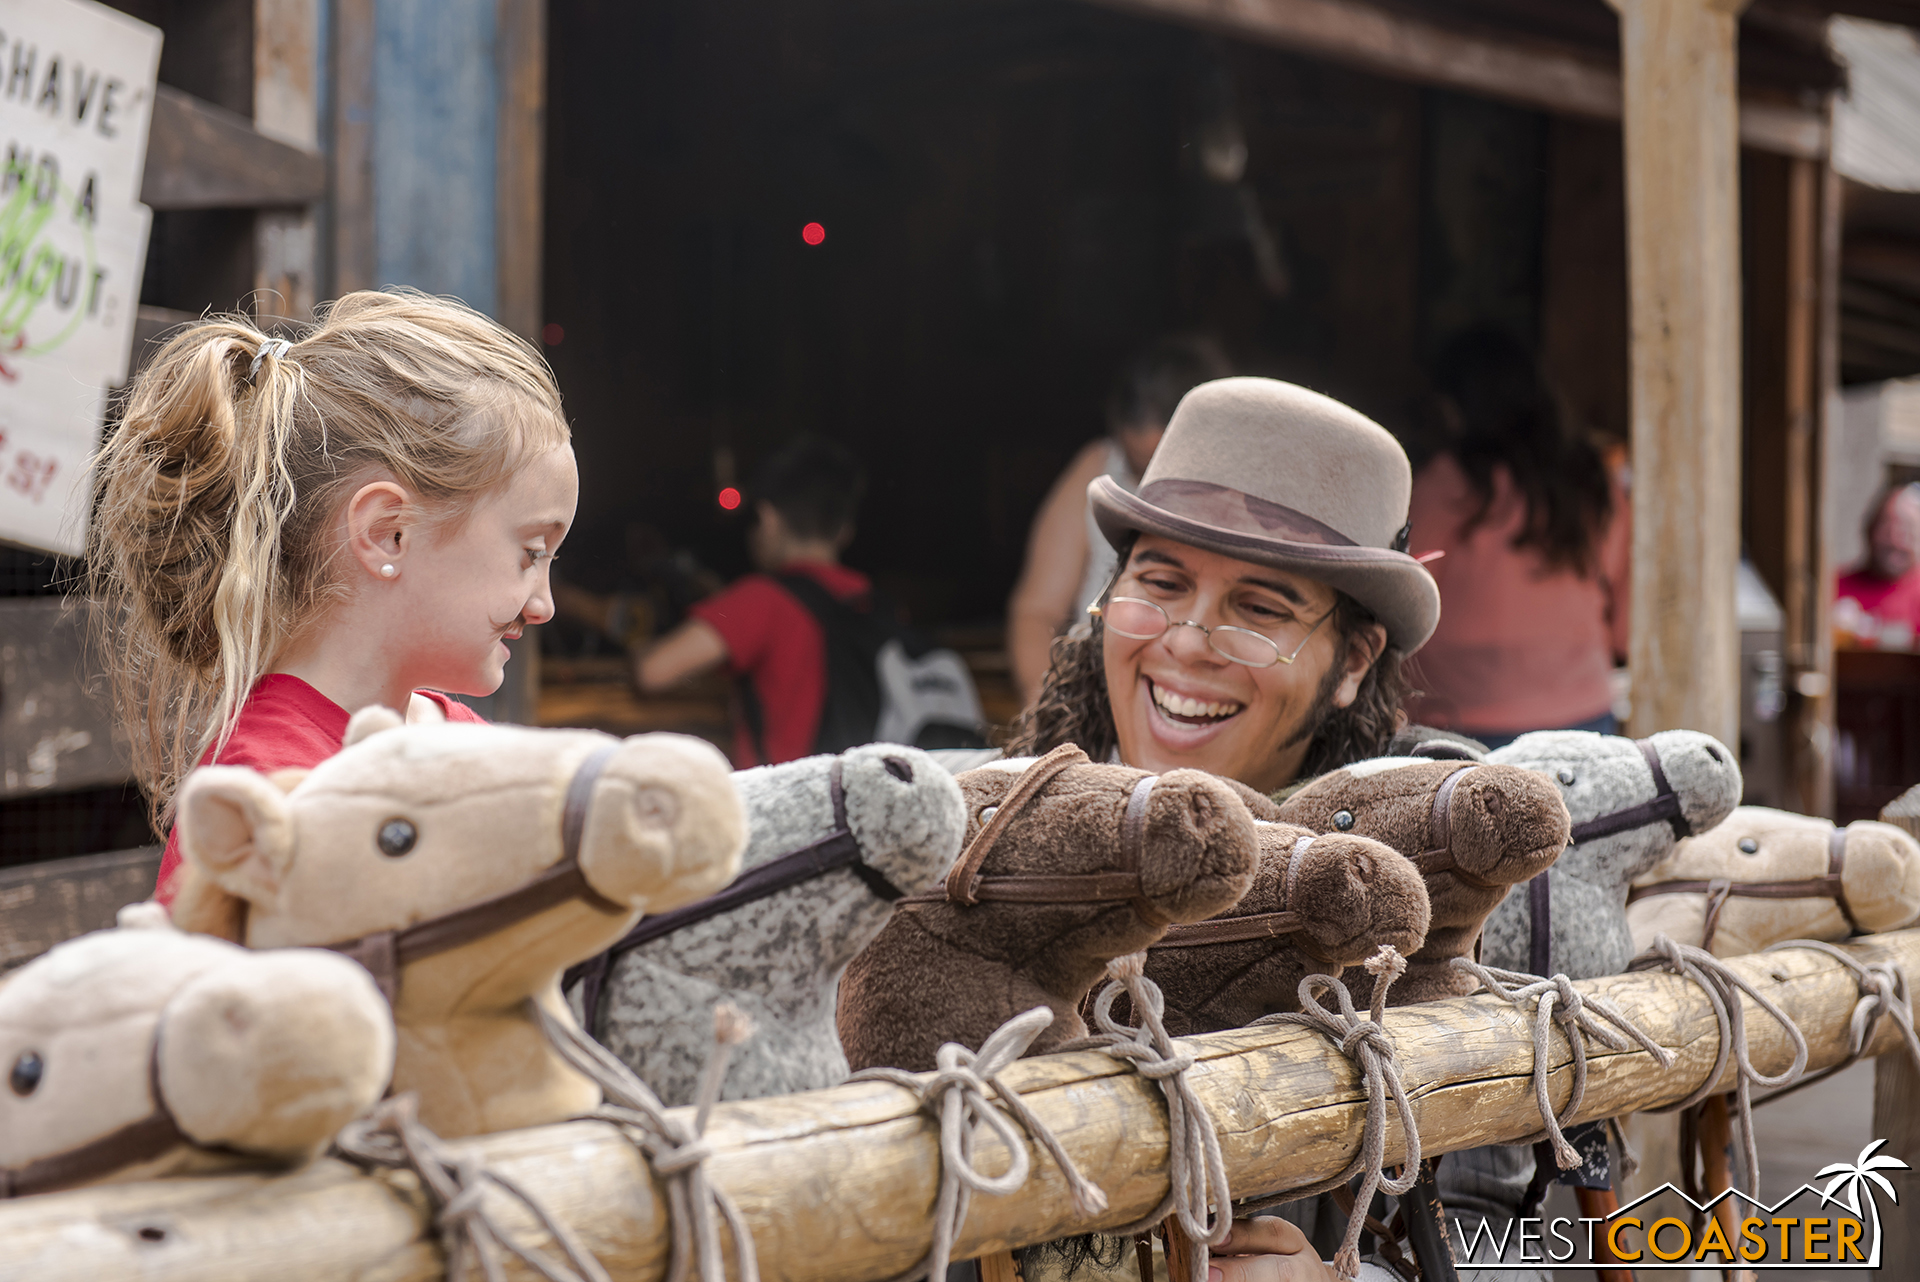 These are the heart-warming moments that make Ghost Town Alive! so fulfilling for both guests and actors.